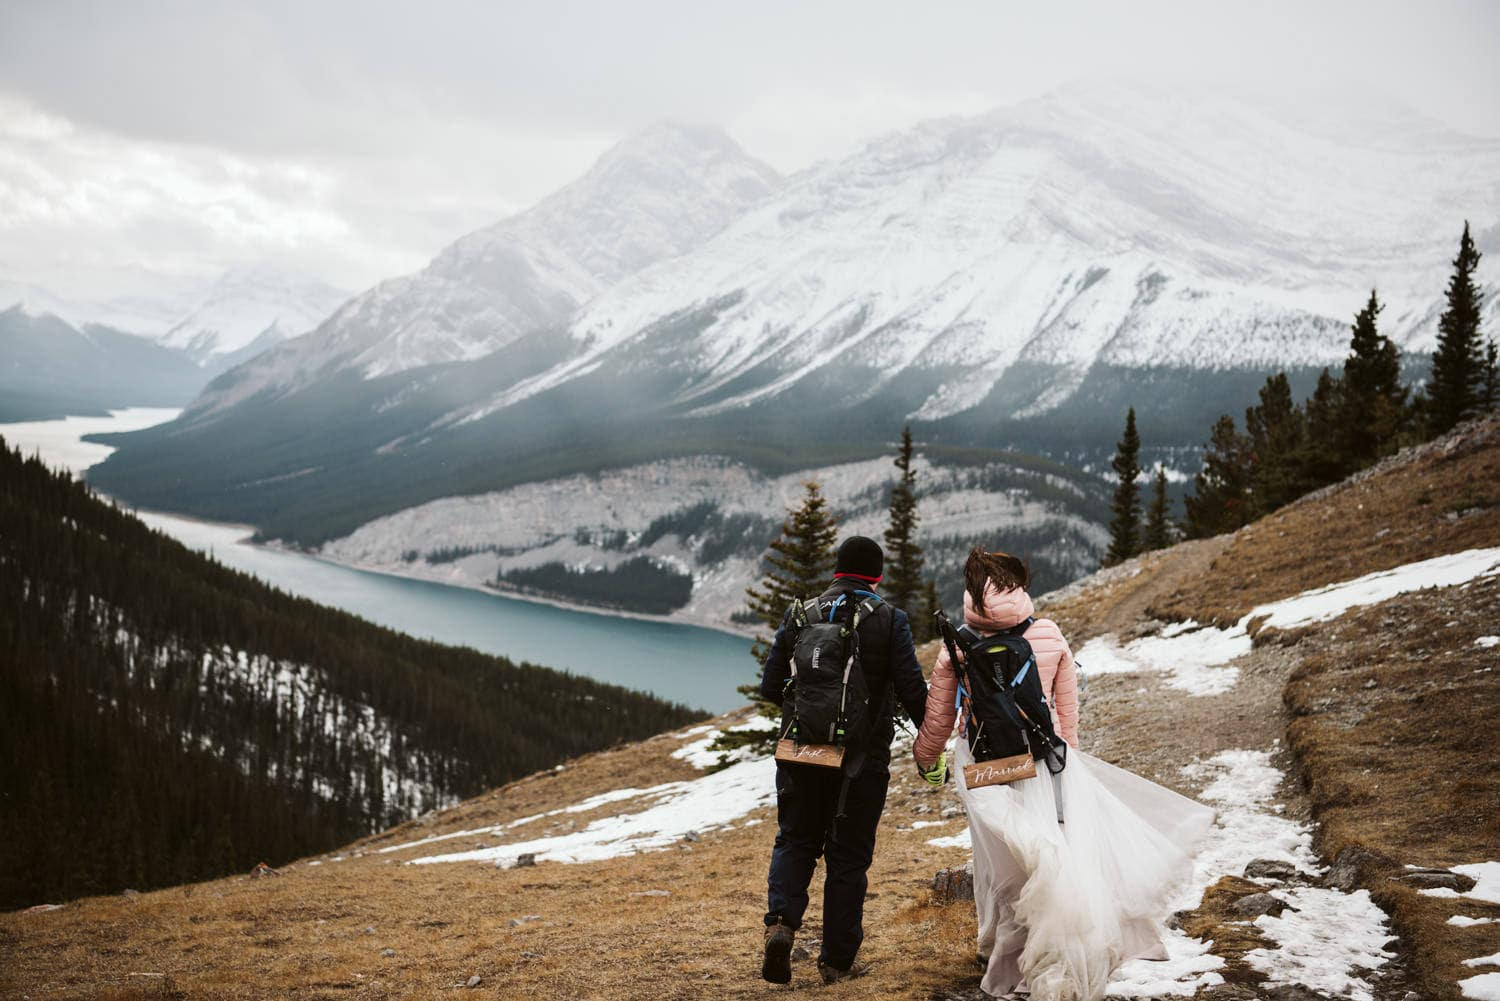 couple on mountain top over looking mountains and alpine lake with their backpacks on thrilled because they discovered one of the best places to elope